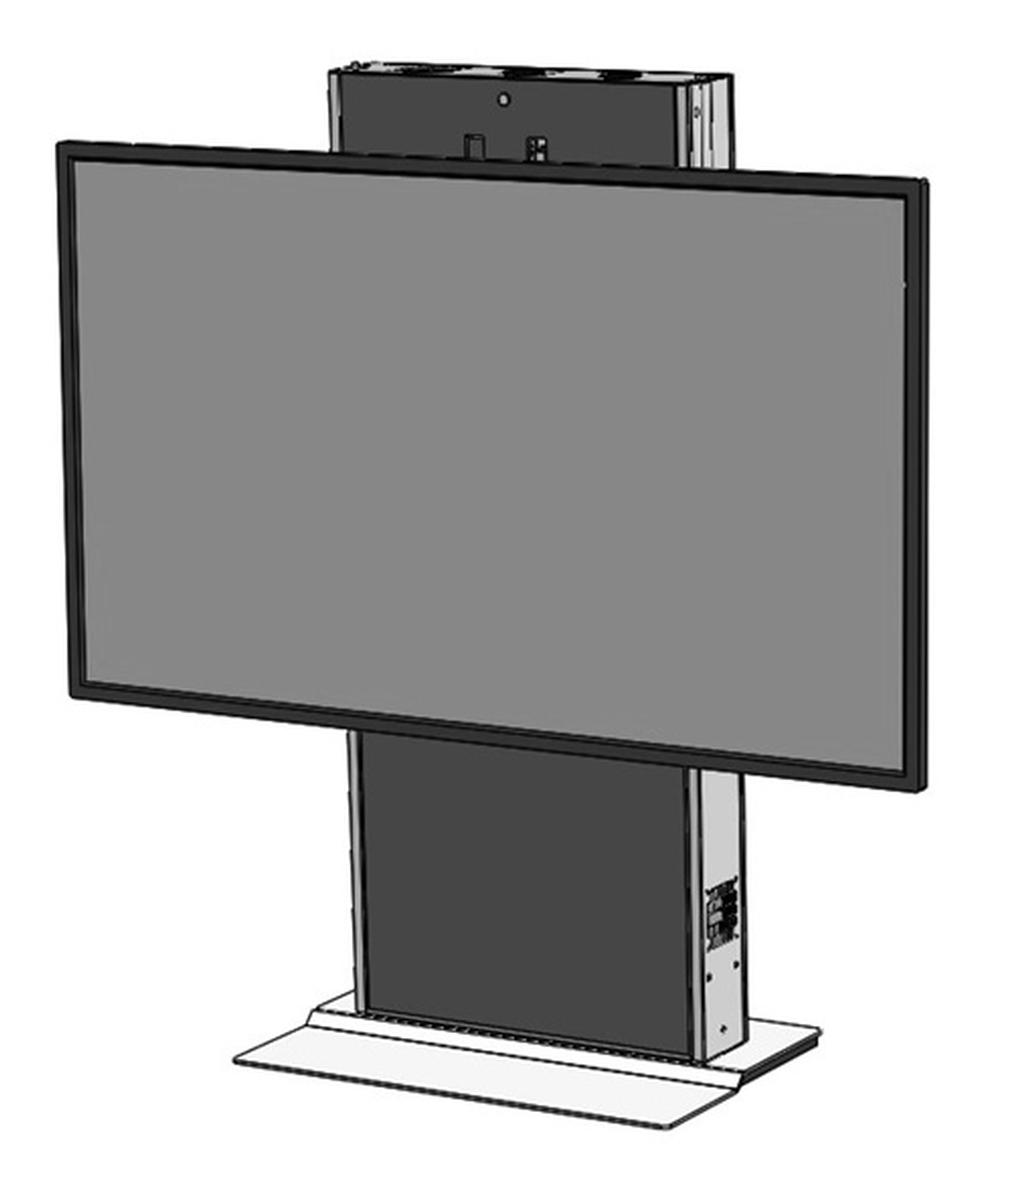 Audio Visual Furniture International Inc. - LFT7000FS-CS70